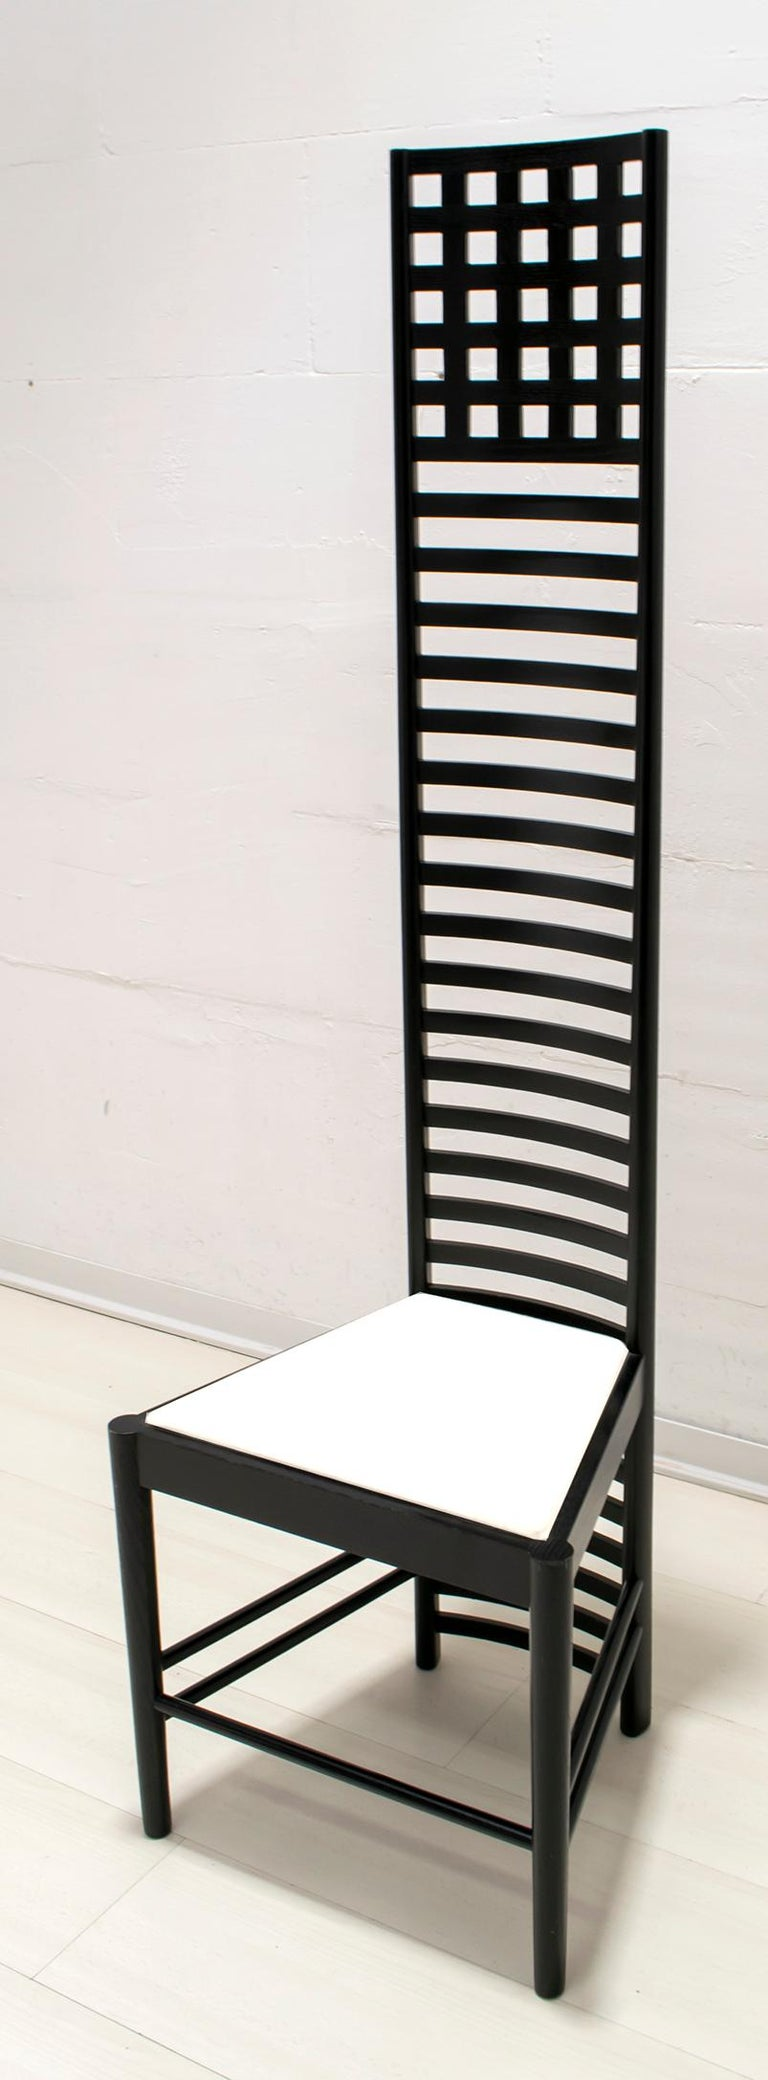 This chair was displayed at the eighth edition of the Secession in Vienna, Austria, in 1900, where Mackintosh with his individual style contributed to the development of the Wiener Werkstätte, a famous Viennese design studio, founded in 1903 by